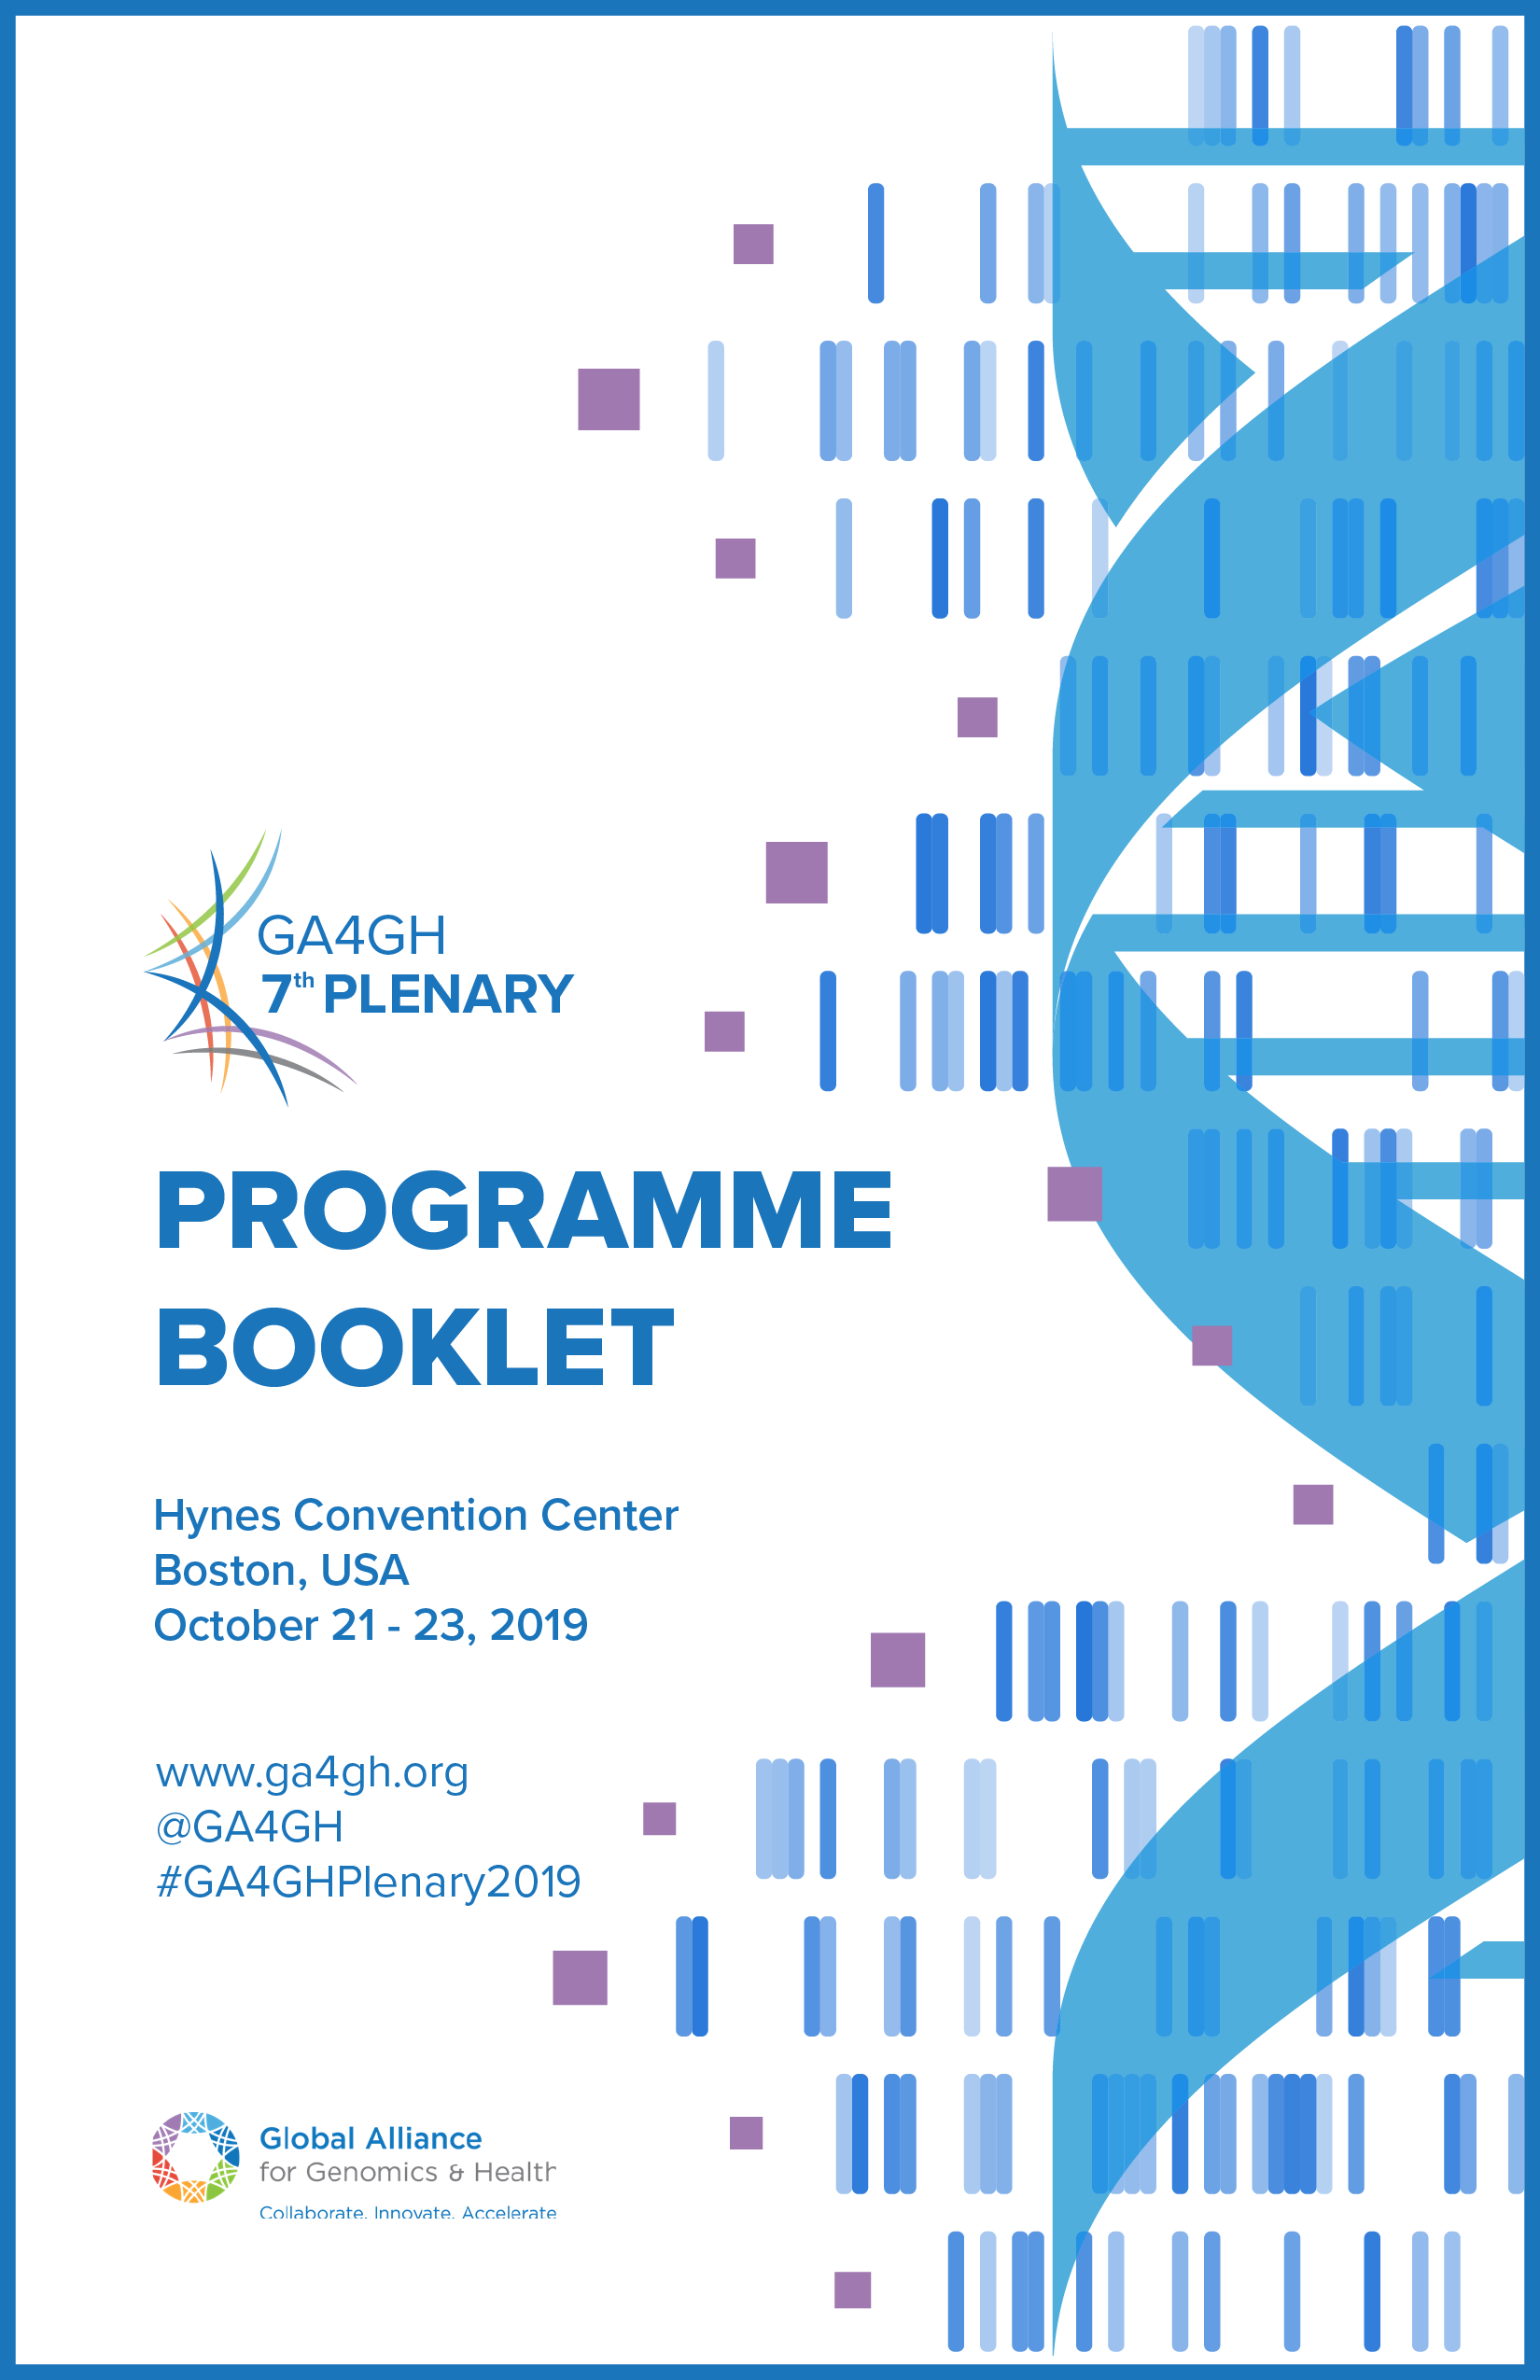 GA4GH 7th Plenary Programme Booklet